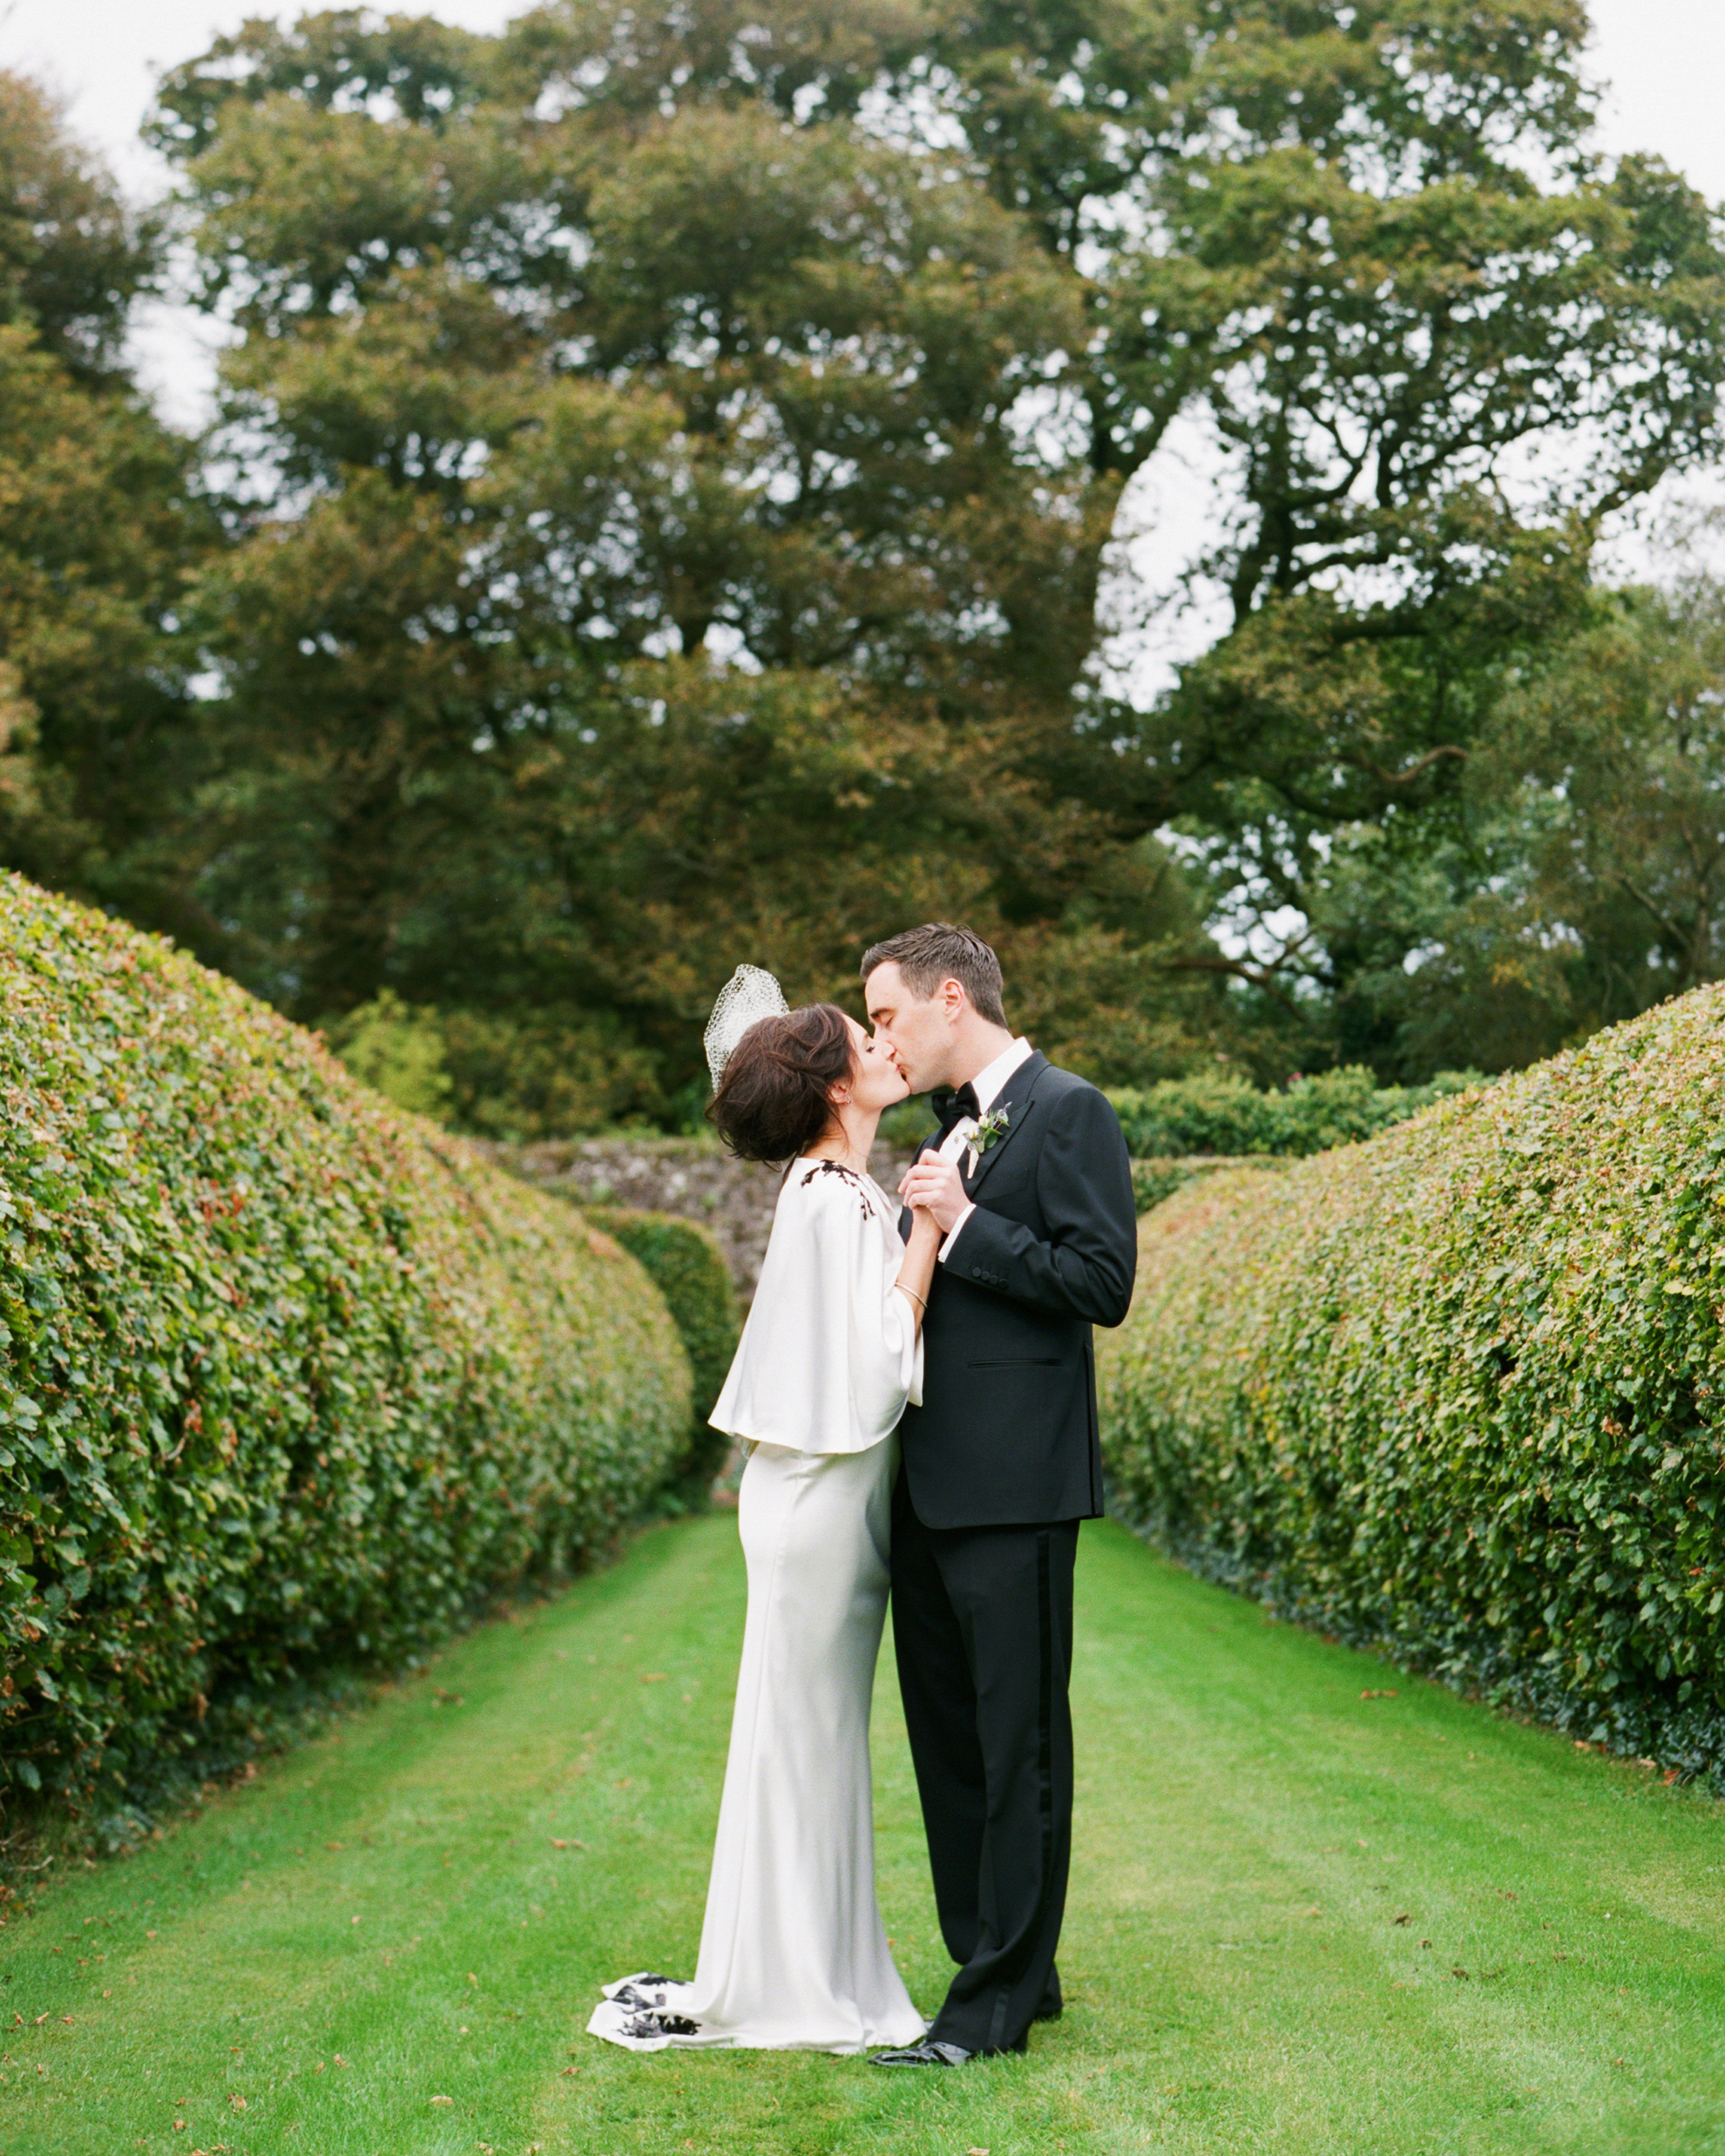 10 Irish Wedding Traditions for Your Big Day